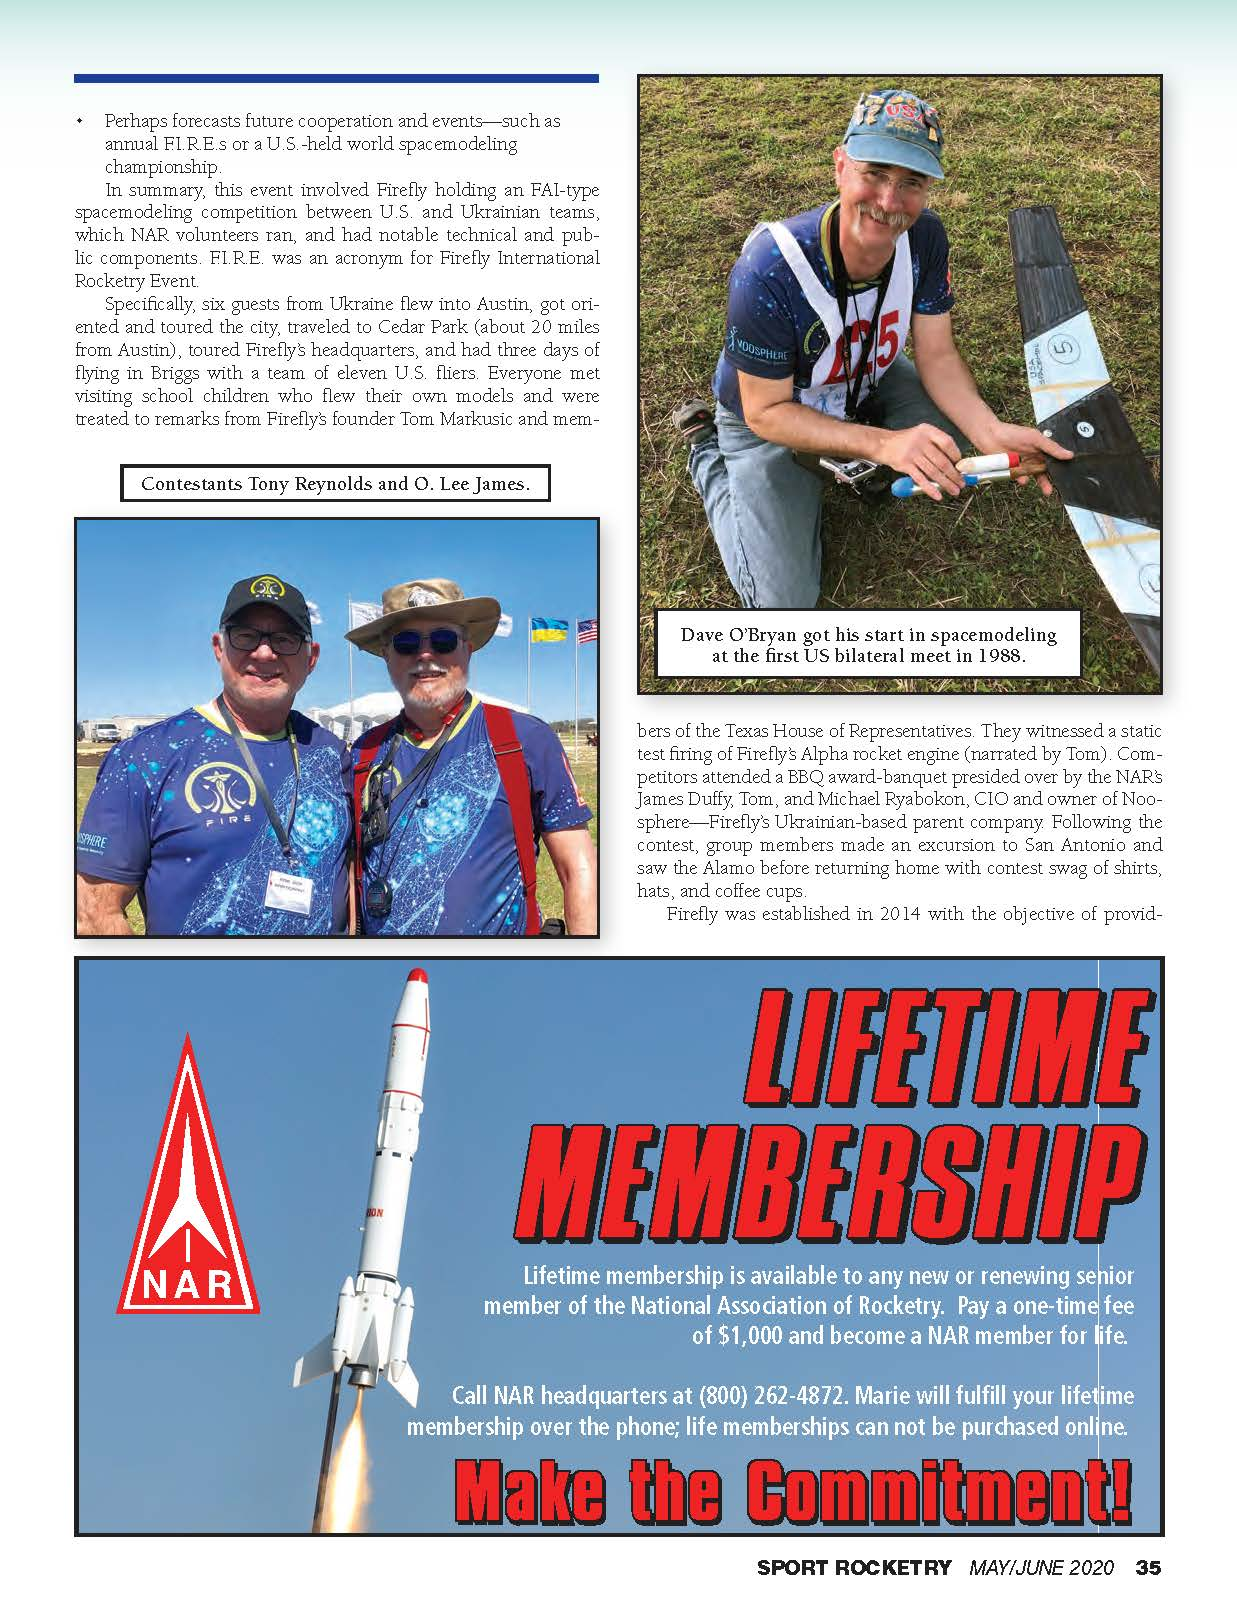 Sport_Rocketry_Magazine_FIRE-2019-Article_Page_4